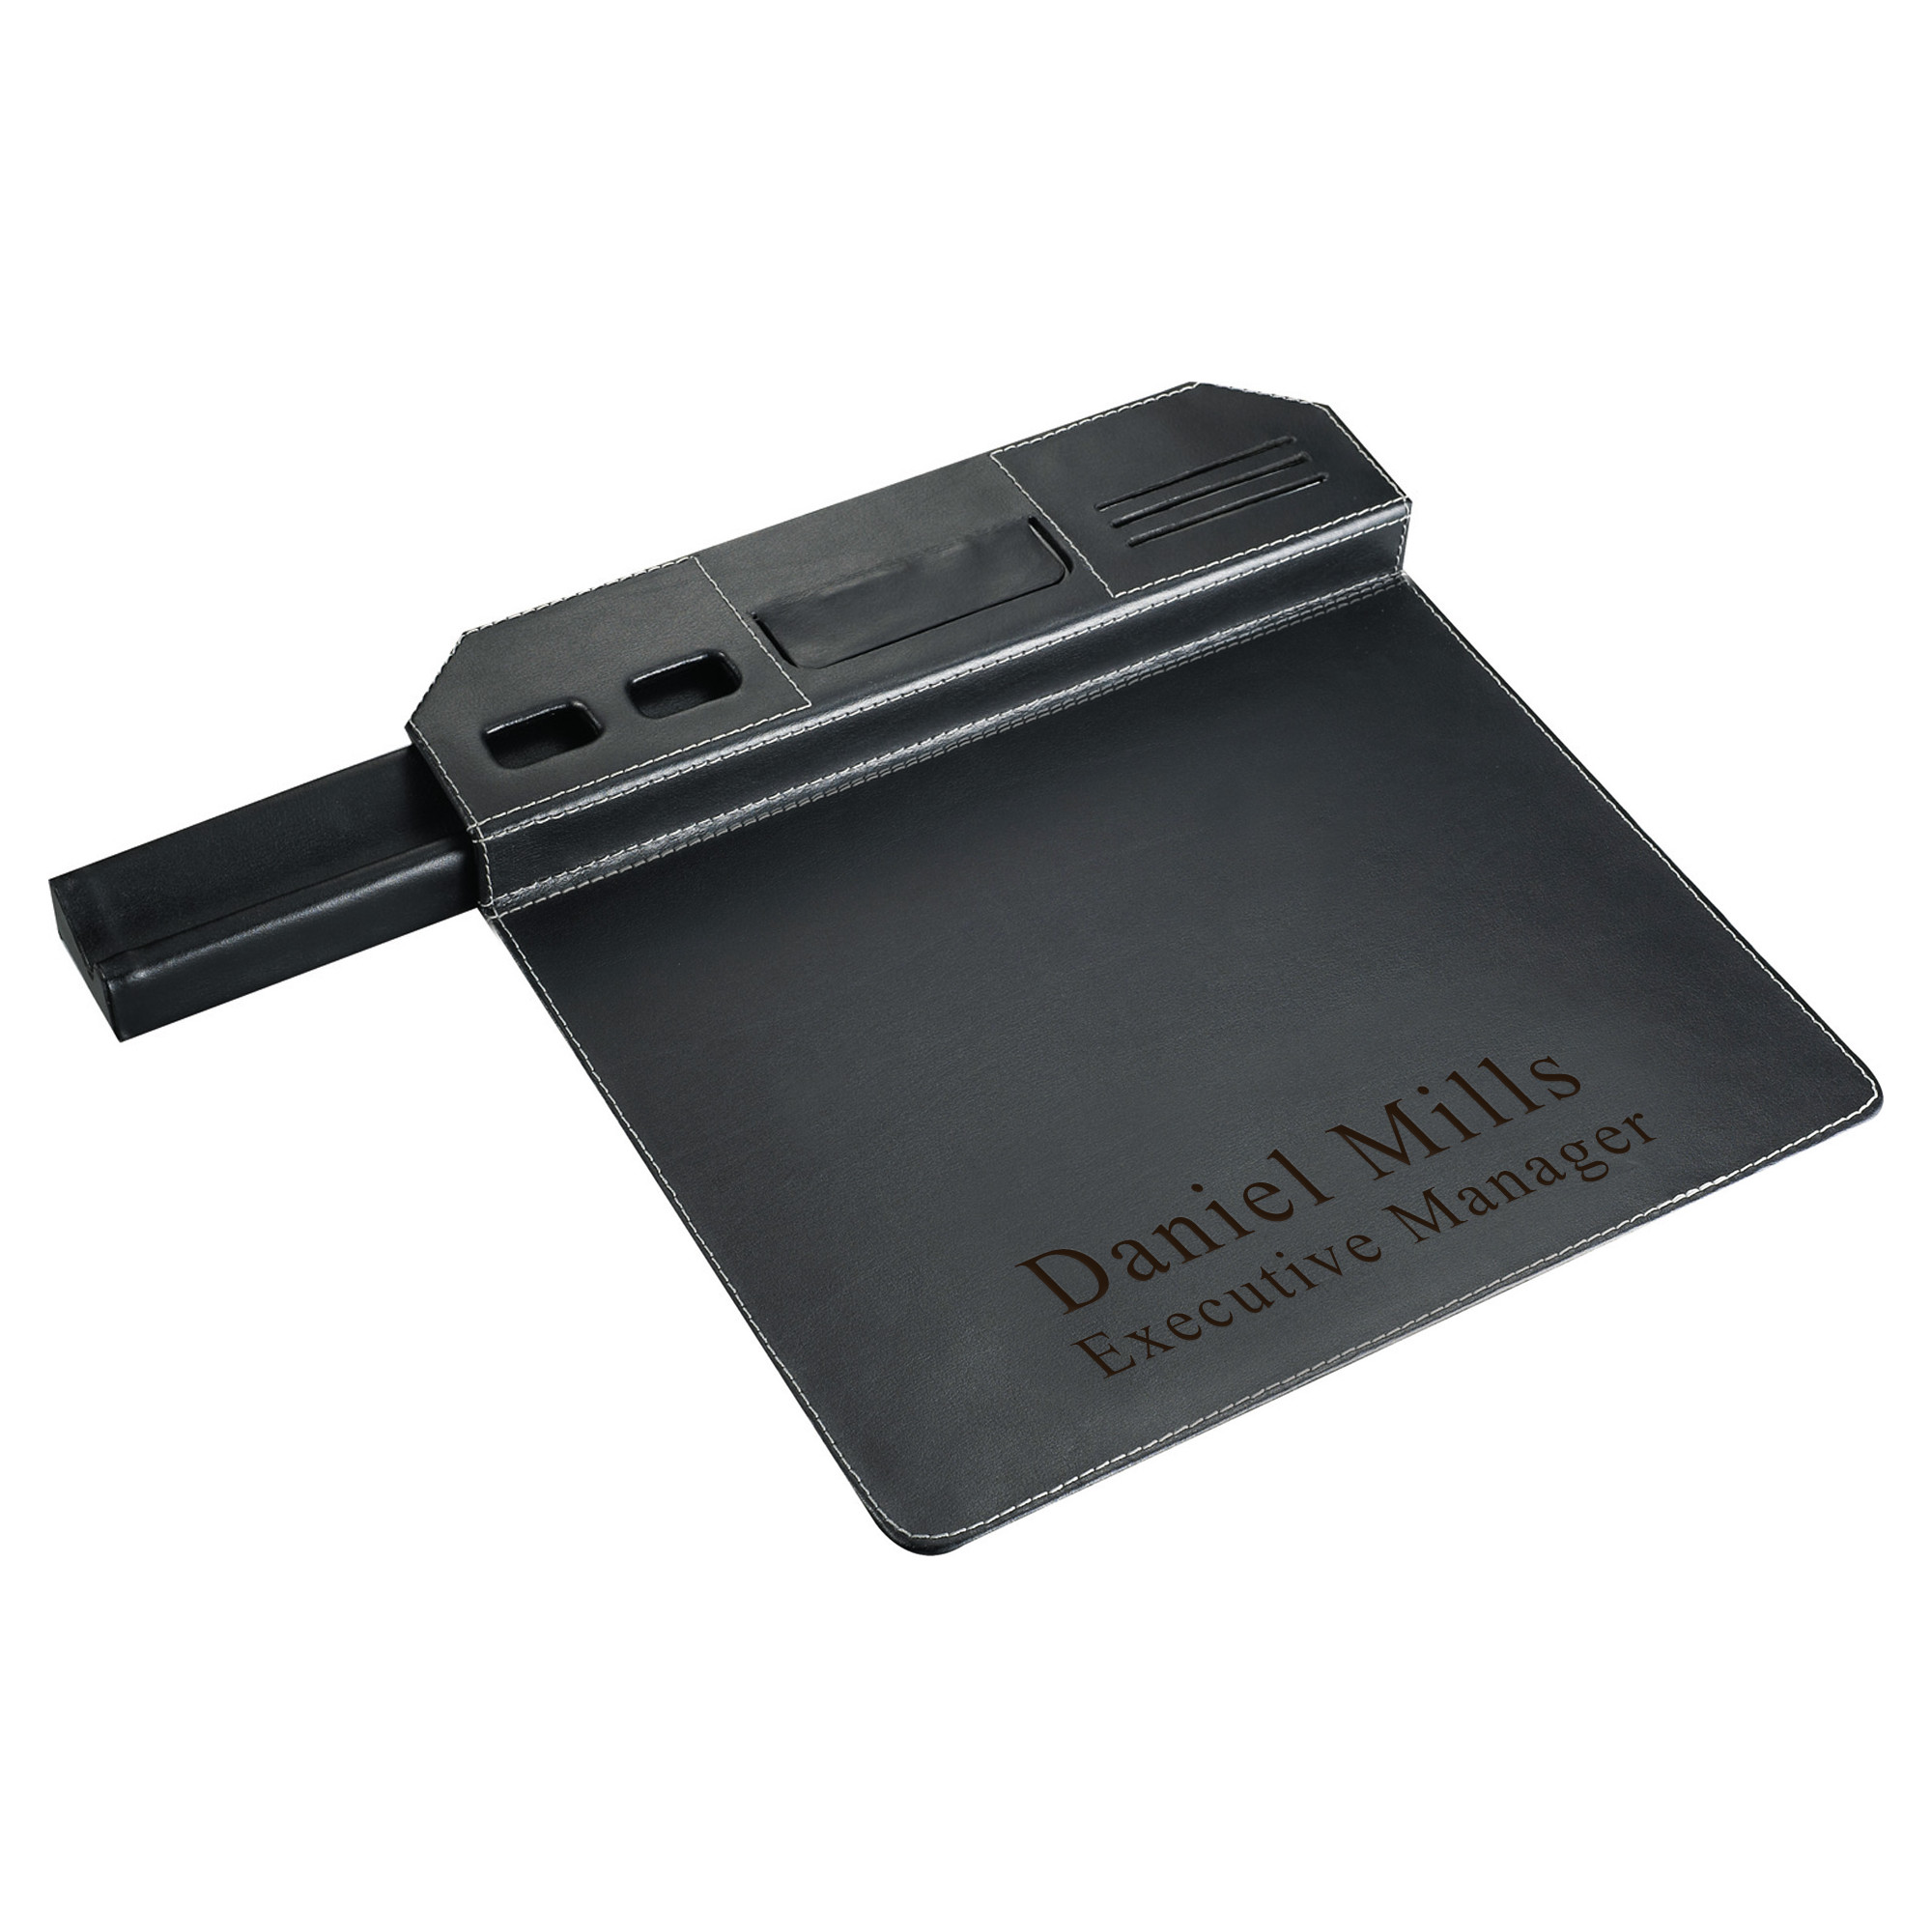 Metropolitan Smart Phone Mouse Pad & Business Card/USB Flash Drive ...